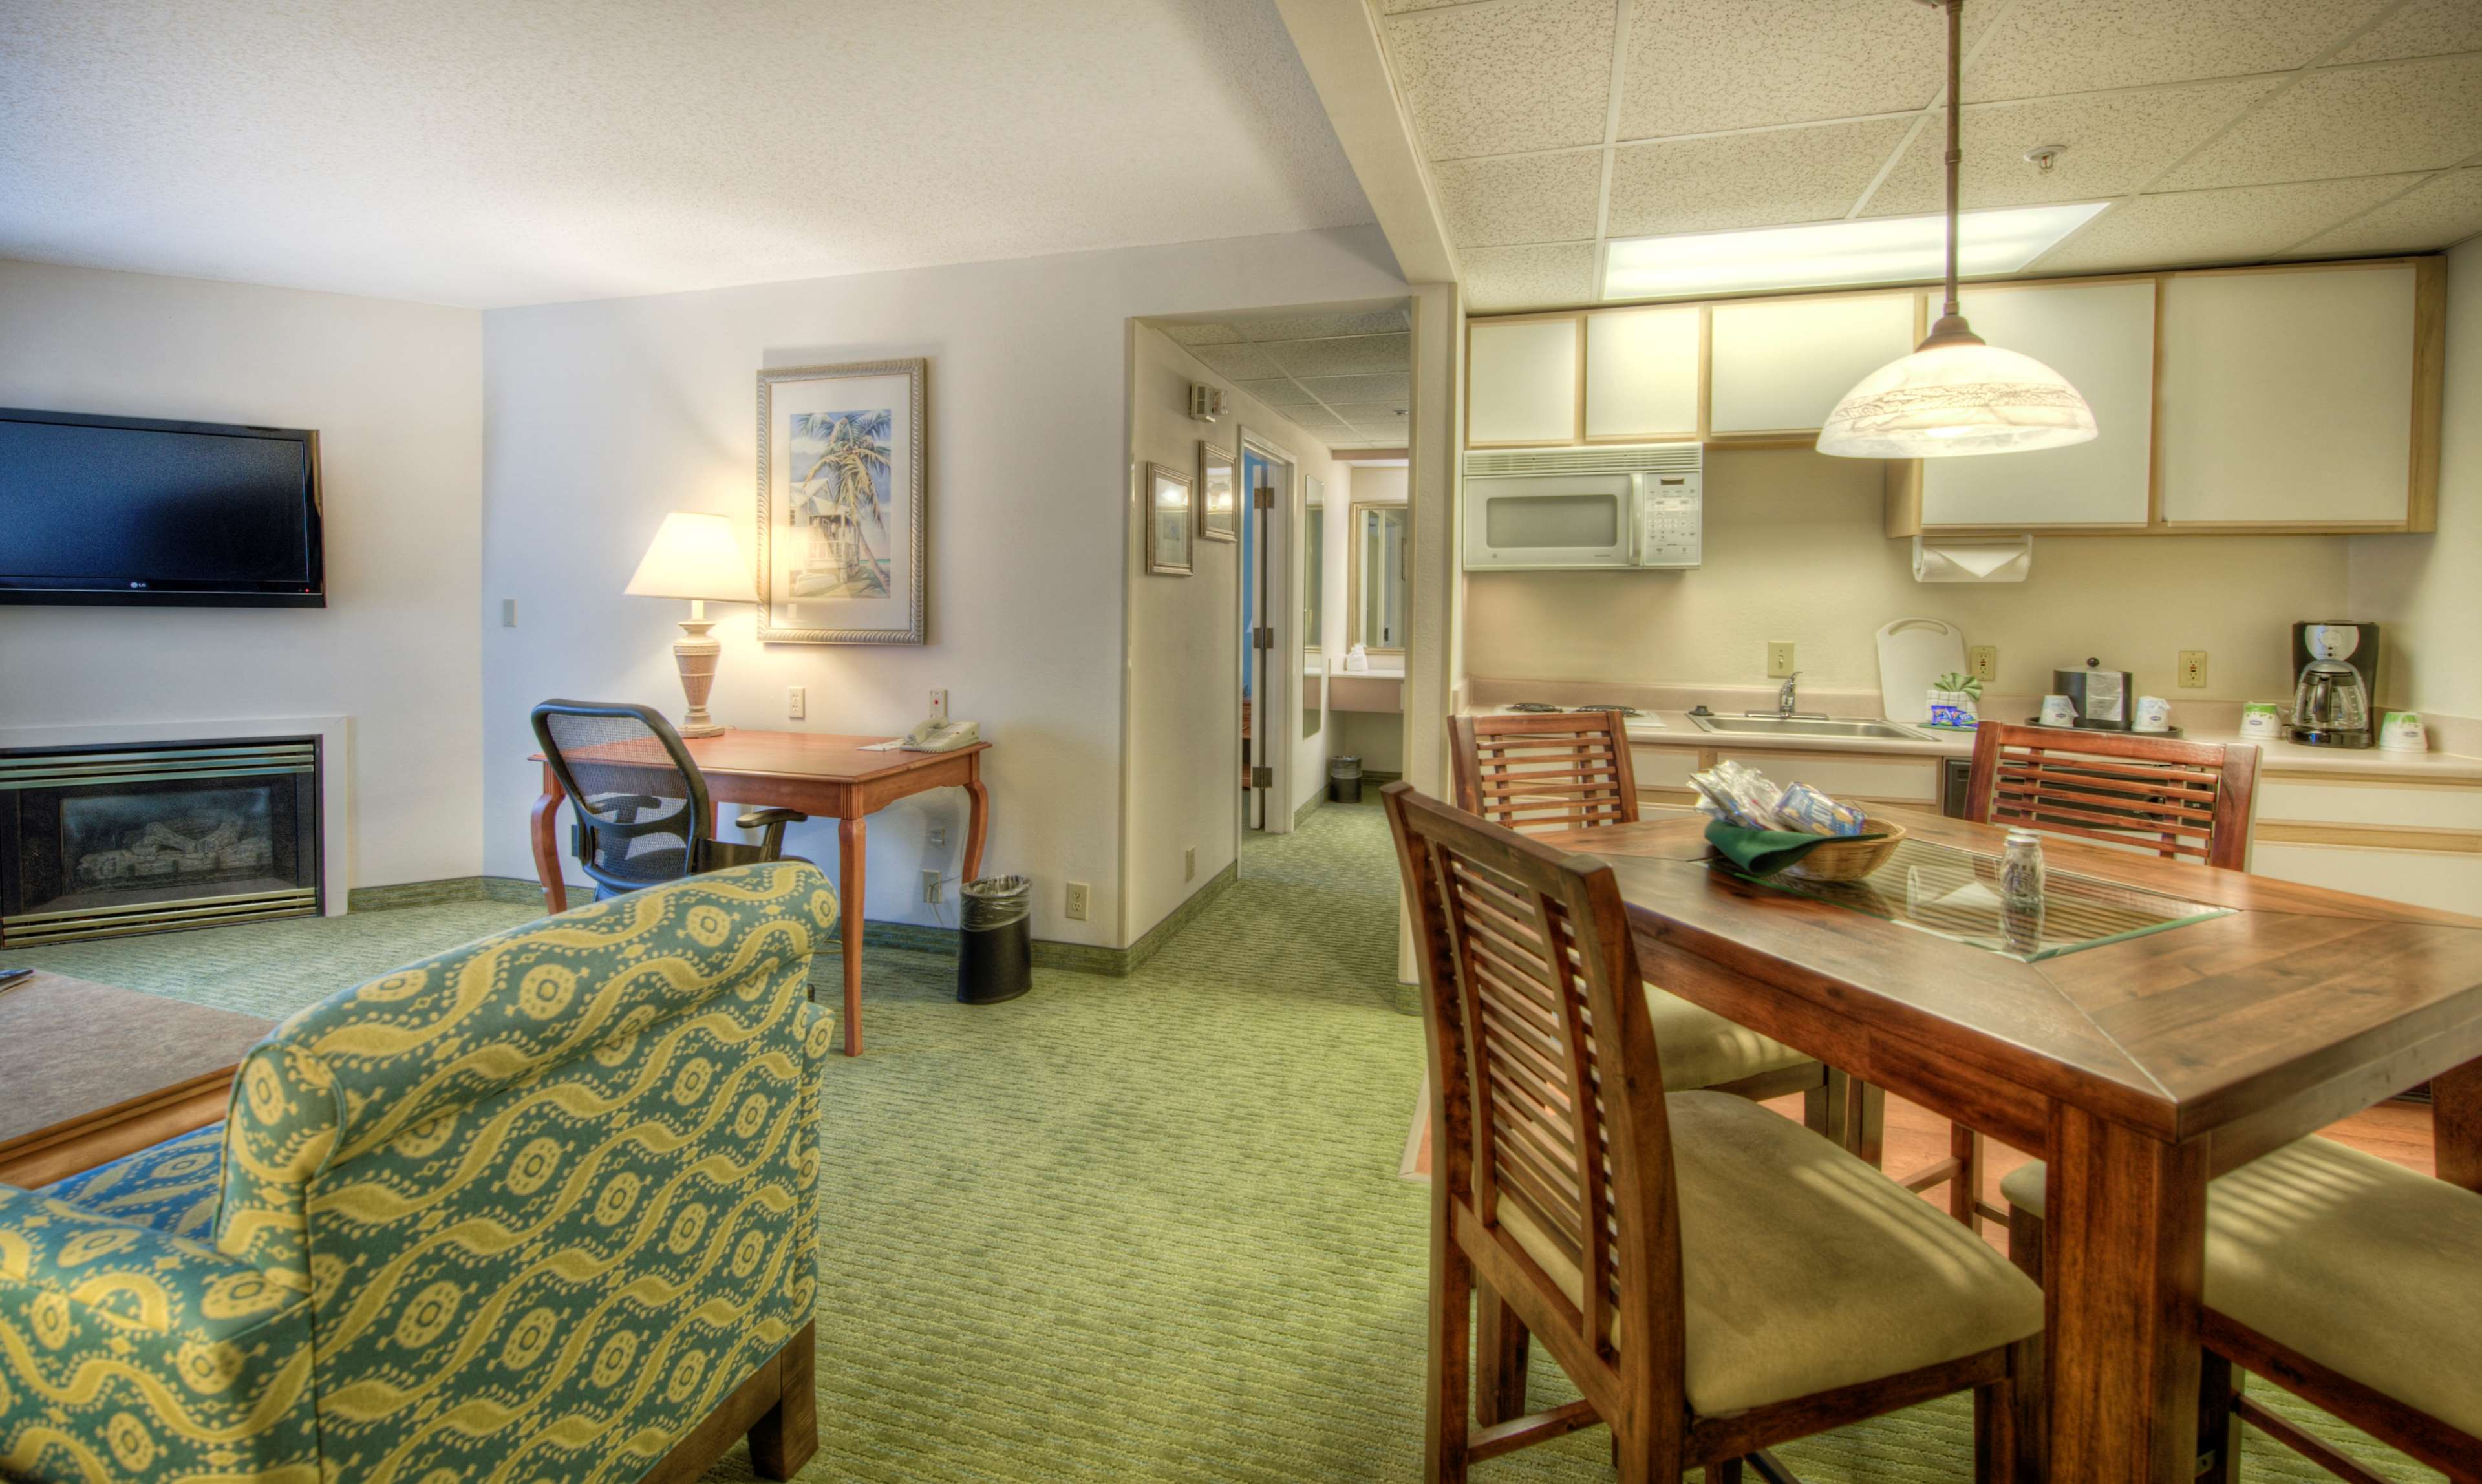 Hampton Inn & Suites Wilmington/Wrightsville Beach image 29